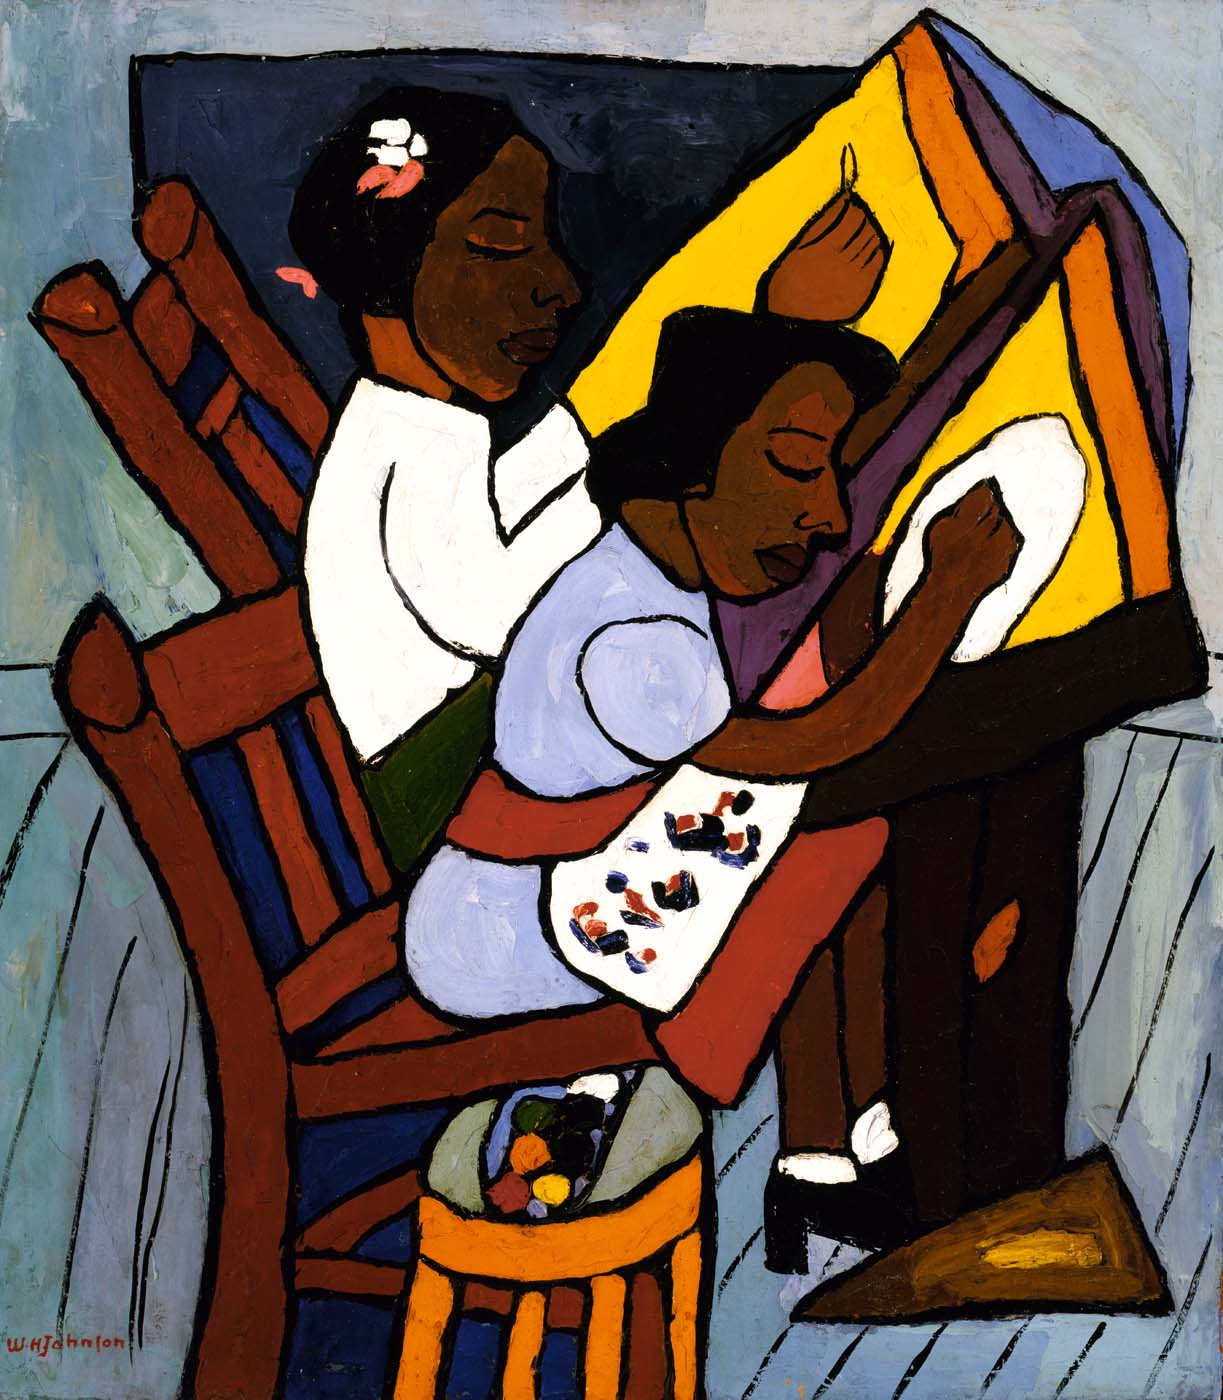 A painting by William H. Johnson of two people painting.